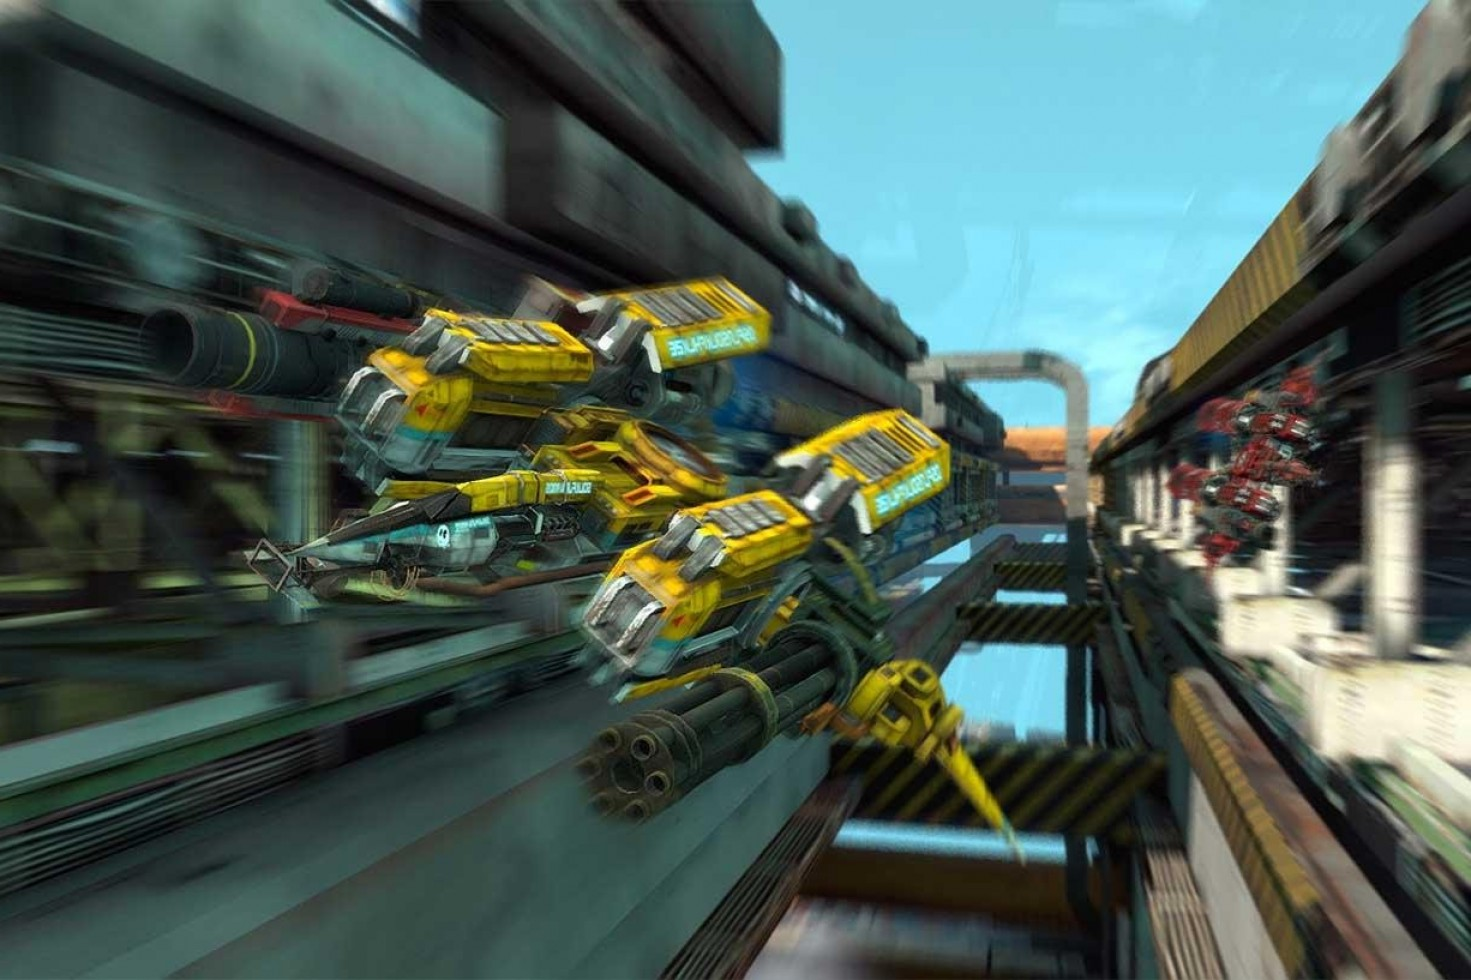 Strike Vector PC: Is This The Best Looking Indie Game Ever Made